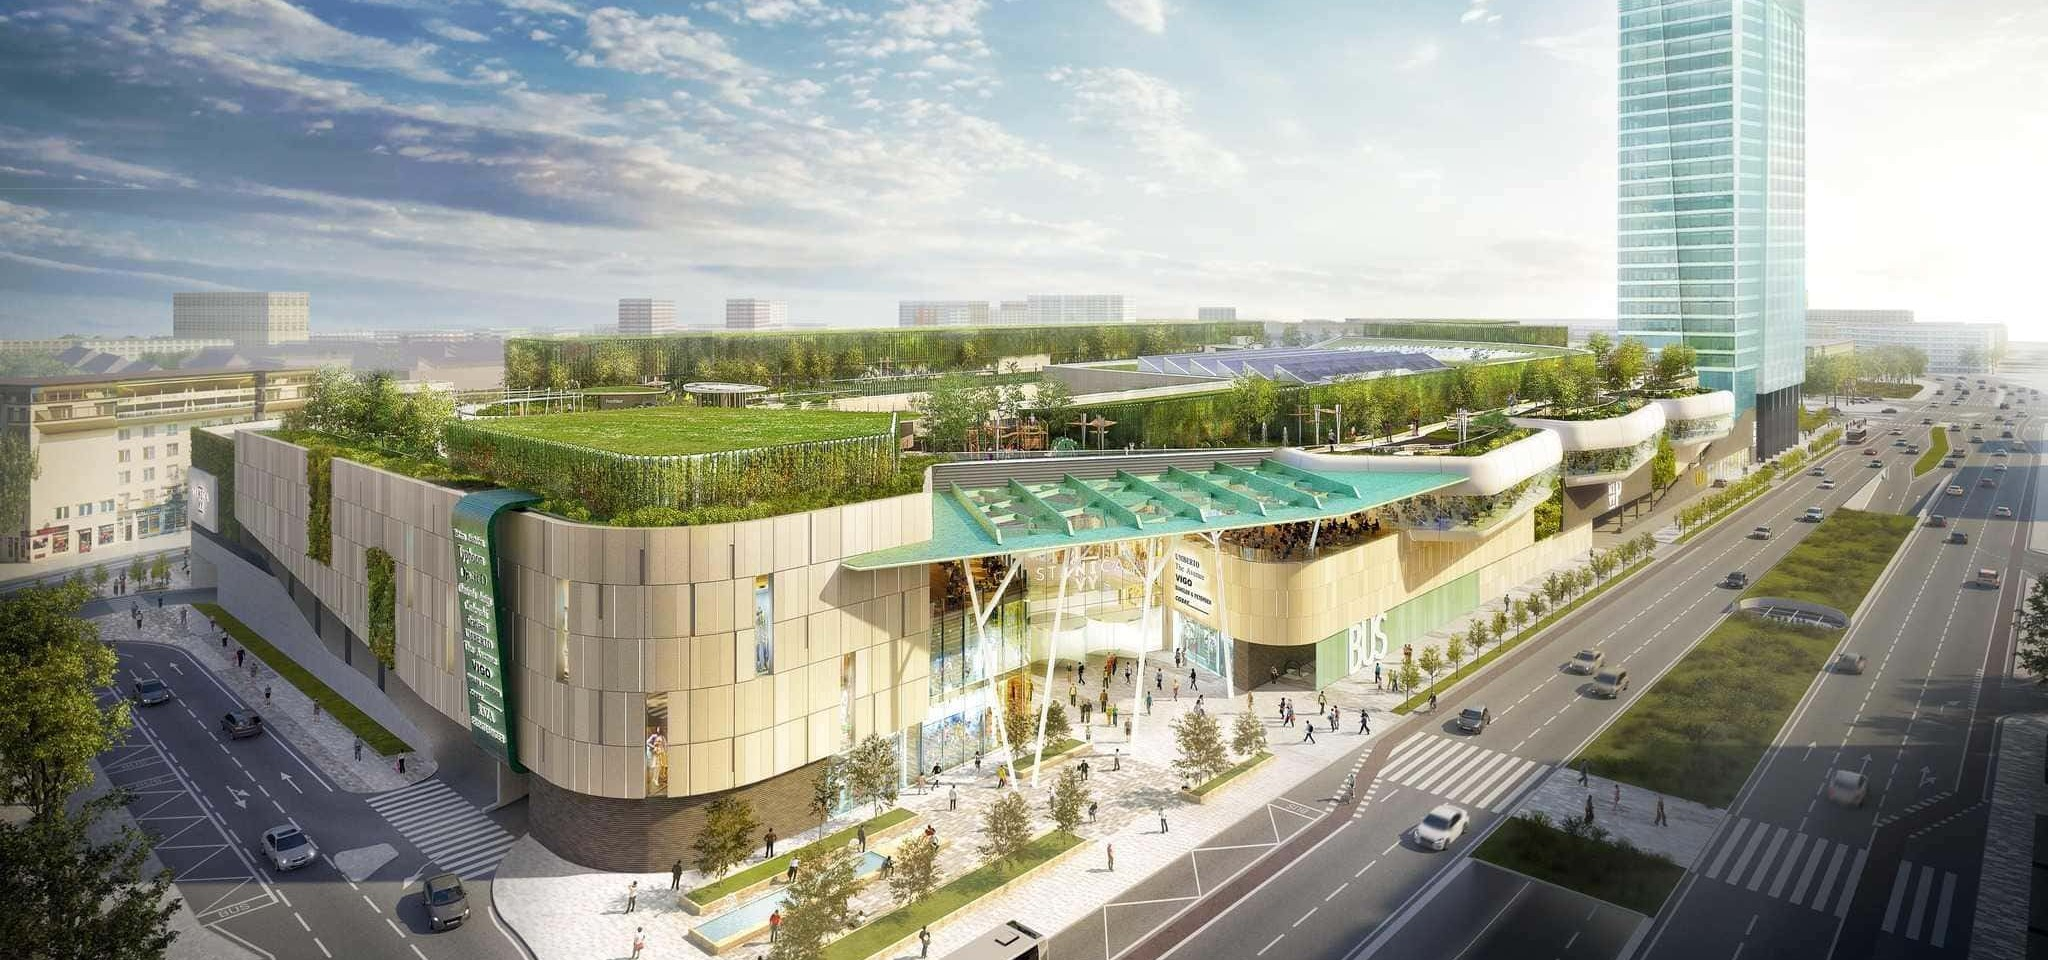 HB Reavis receives loan of € 175 million for Nivy Station, banks thus prove the uniqueness of the scheme